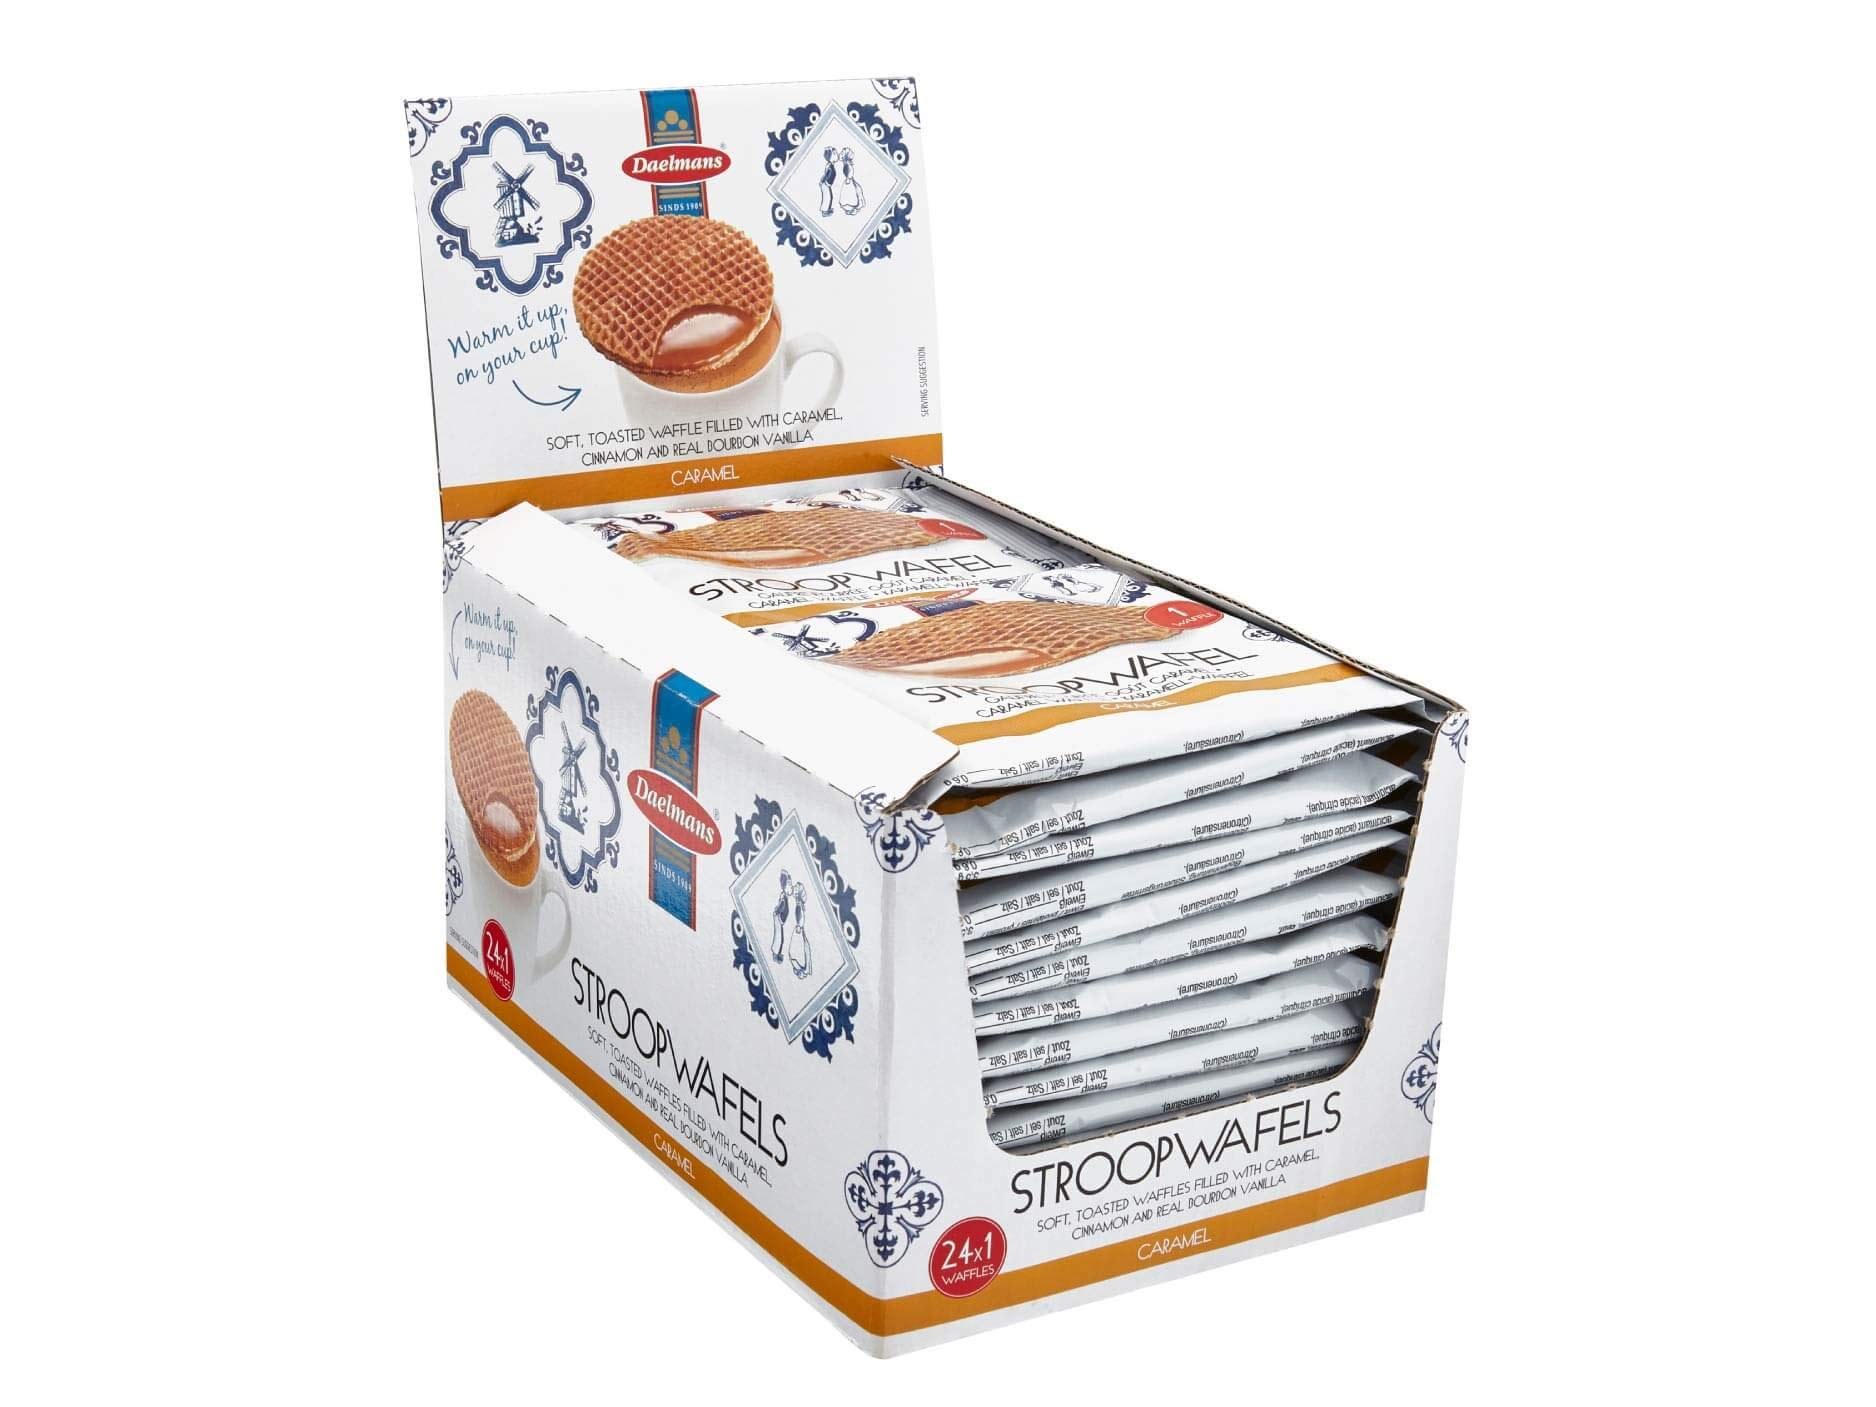 DAELMANS Stroopwafels, Dutch Waffles Soft Toasted, Caramel, Office Snack, Jumbo Size, Kosher Dairy, Authentic Made In Holland, 24 1-pack Stroopwafels Per Box, 1.38oz each